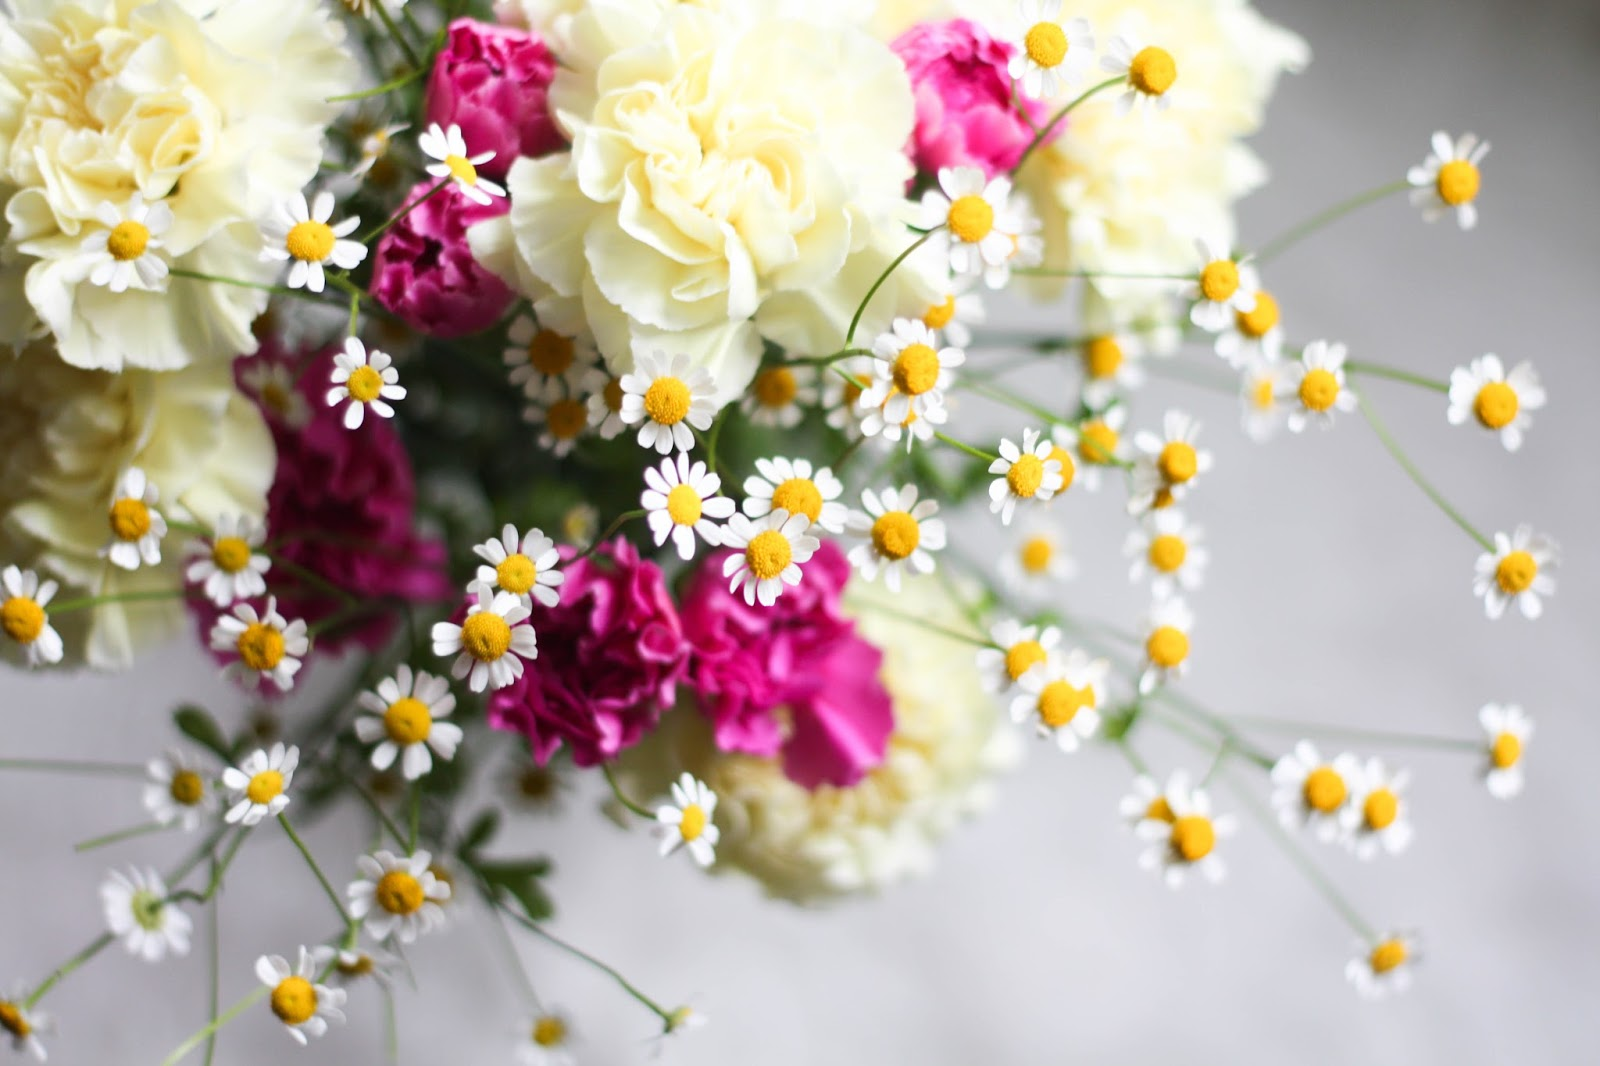 The language of flowers: what do tulips, daisies & roses REALLY mean?